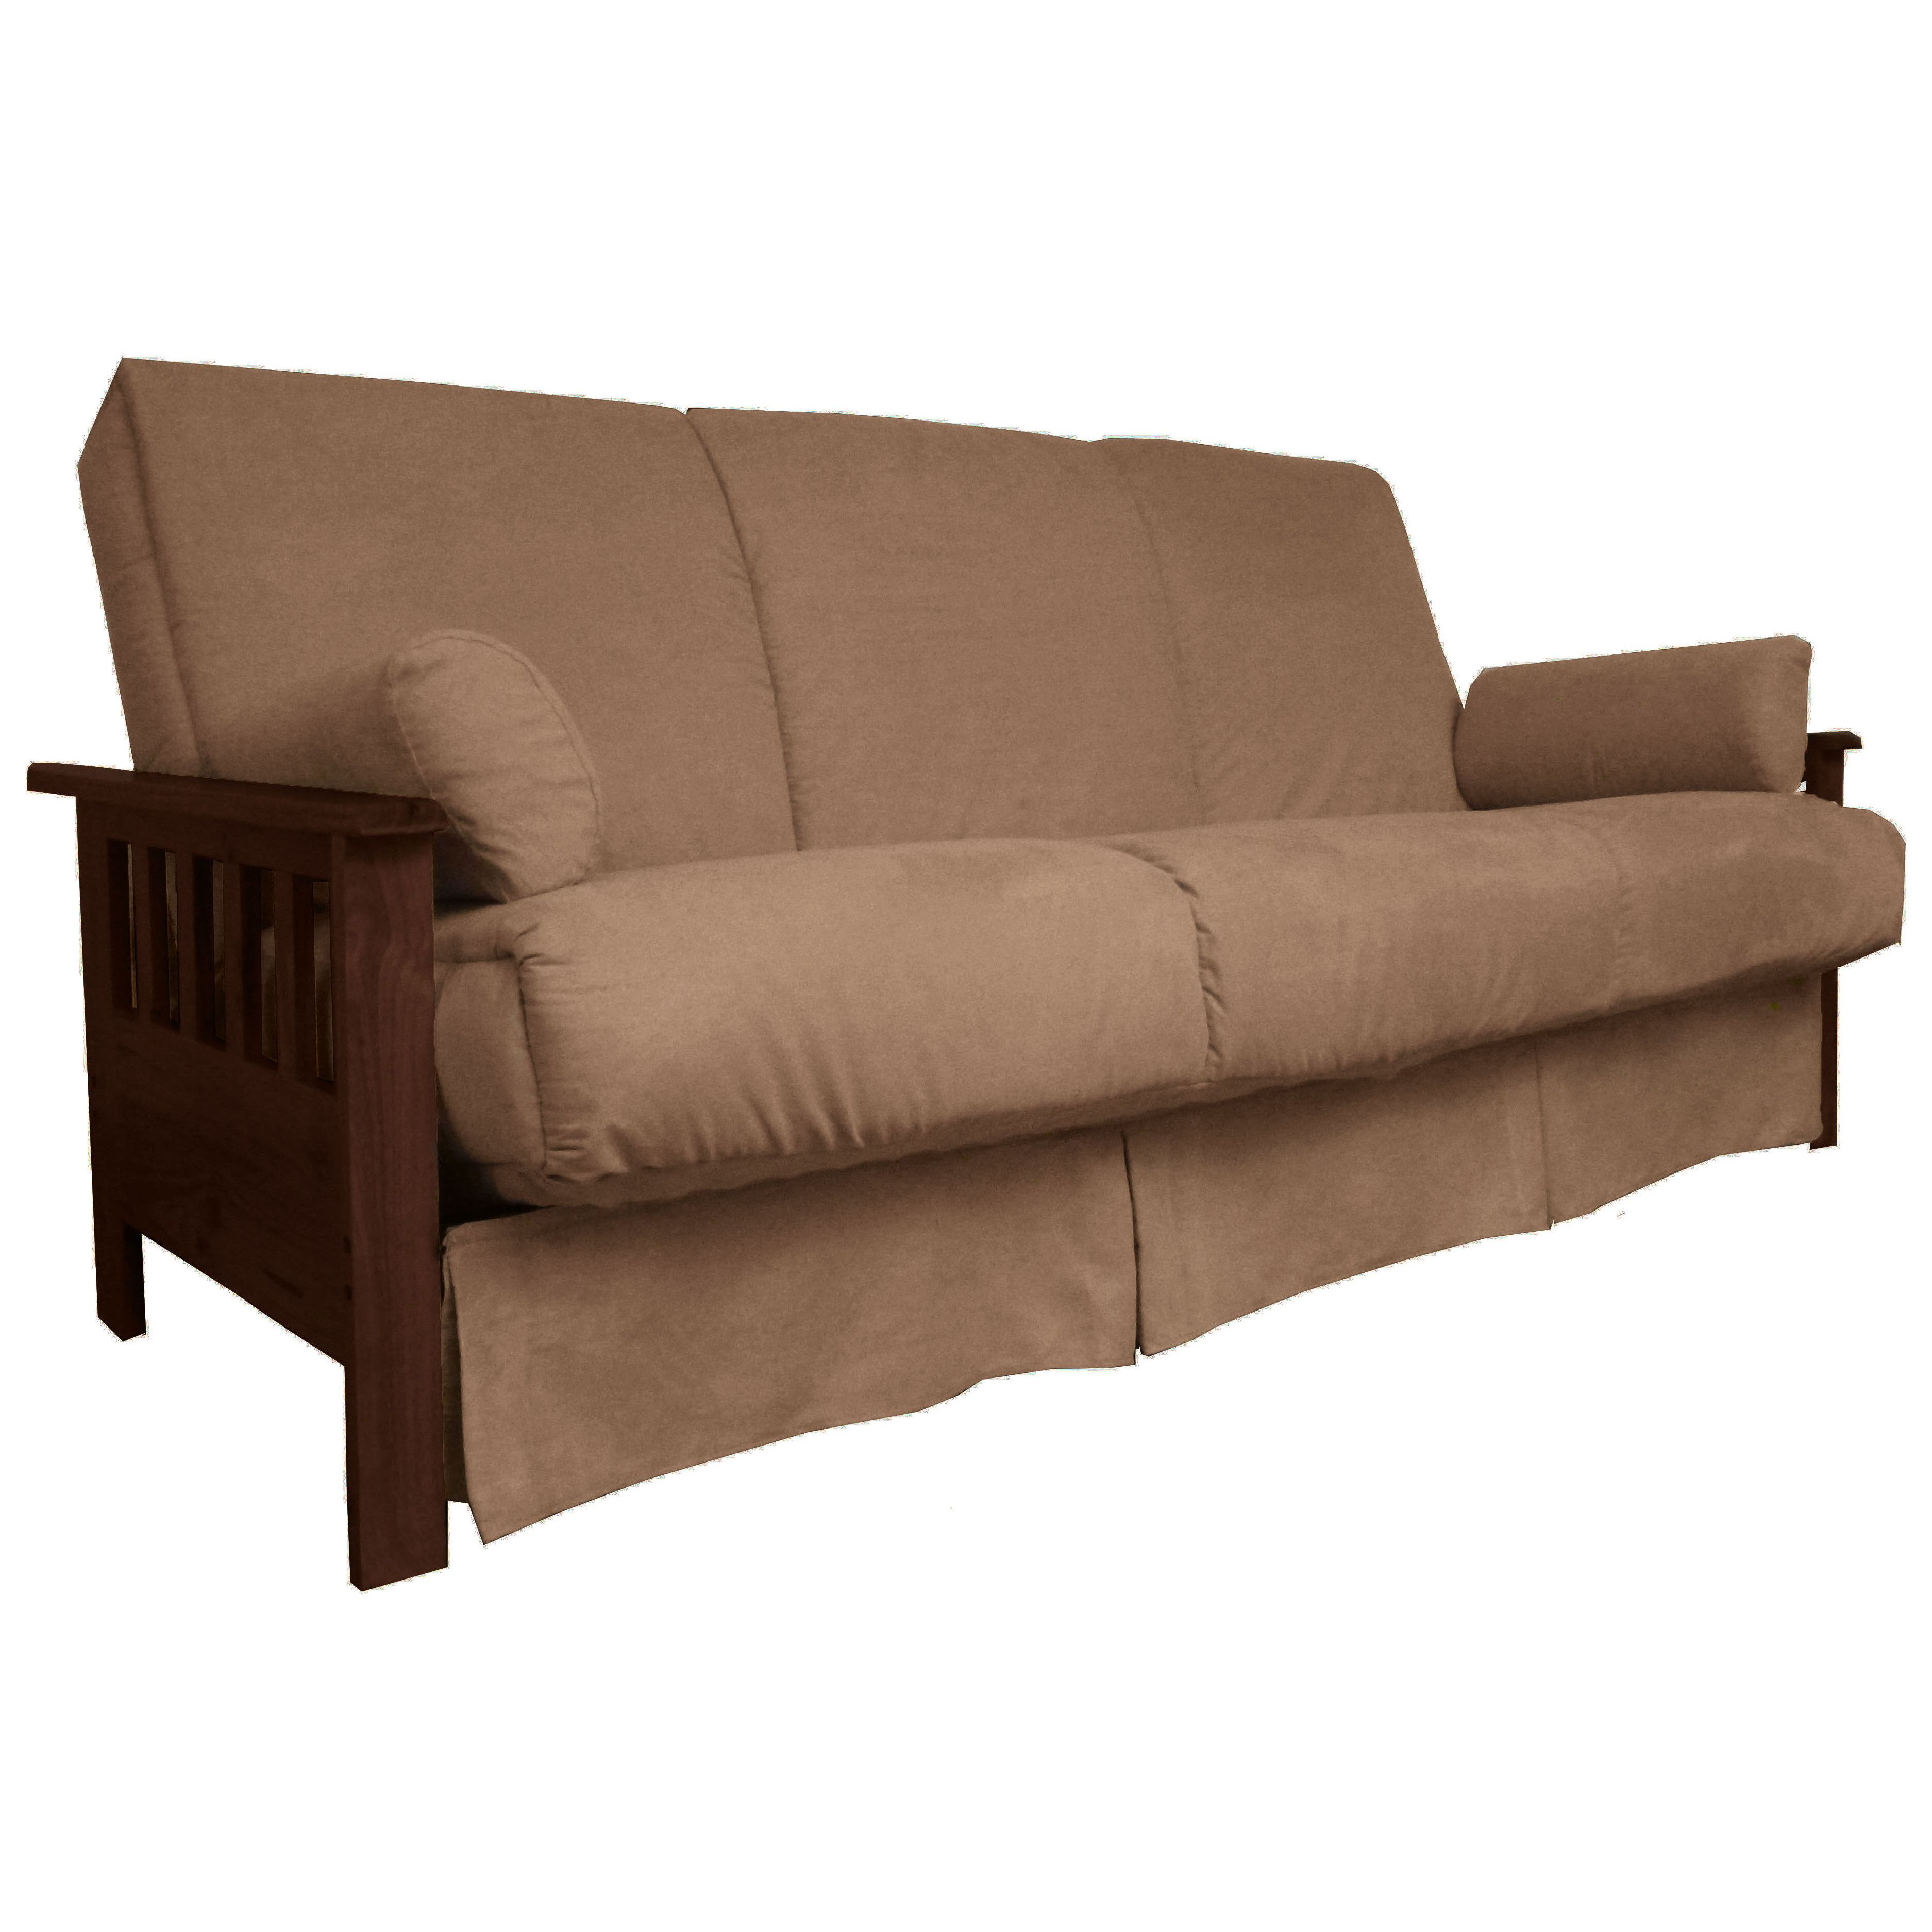 Wayfair For Futons To Match Every Style And Budget Enjoy Free Shipping On Most Stuff Even